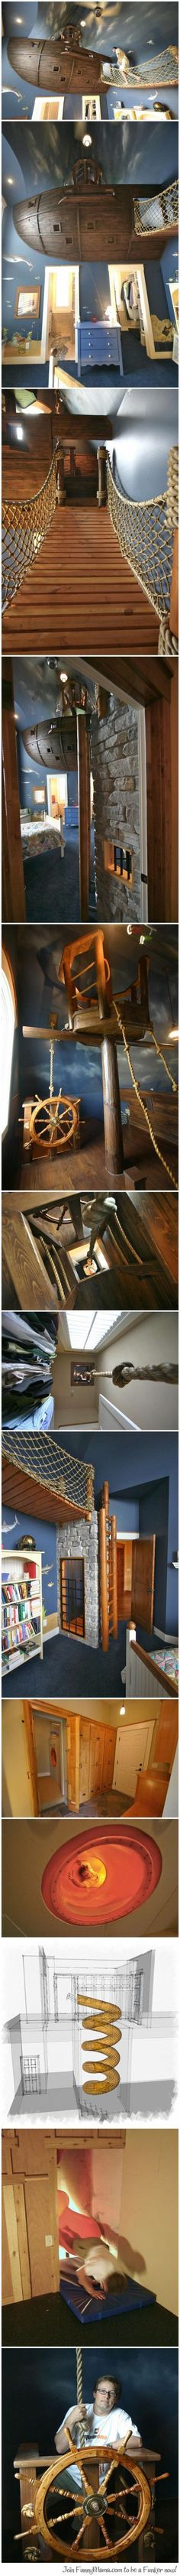 A room designed by a father for his 6 year old son...//This is so cool! I'm jealous.